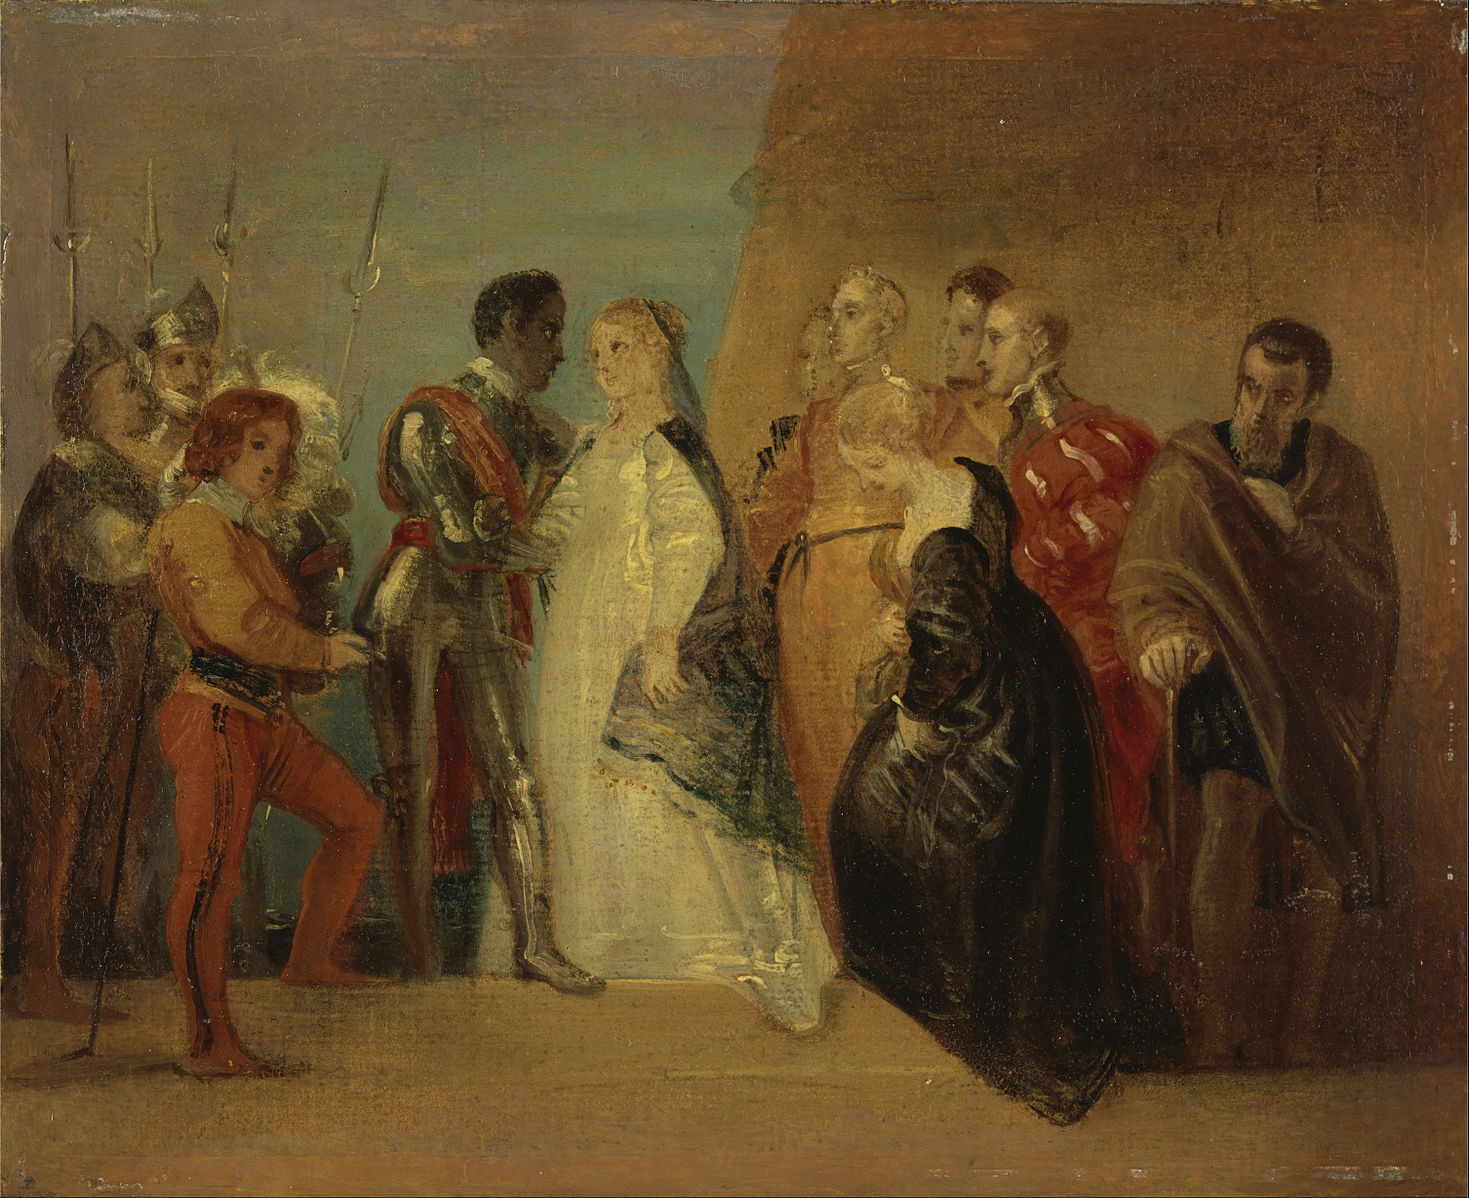 gender differences and the mistreatment of desdemona in shakespeares othello